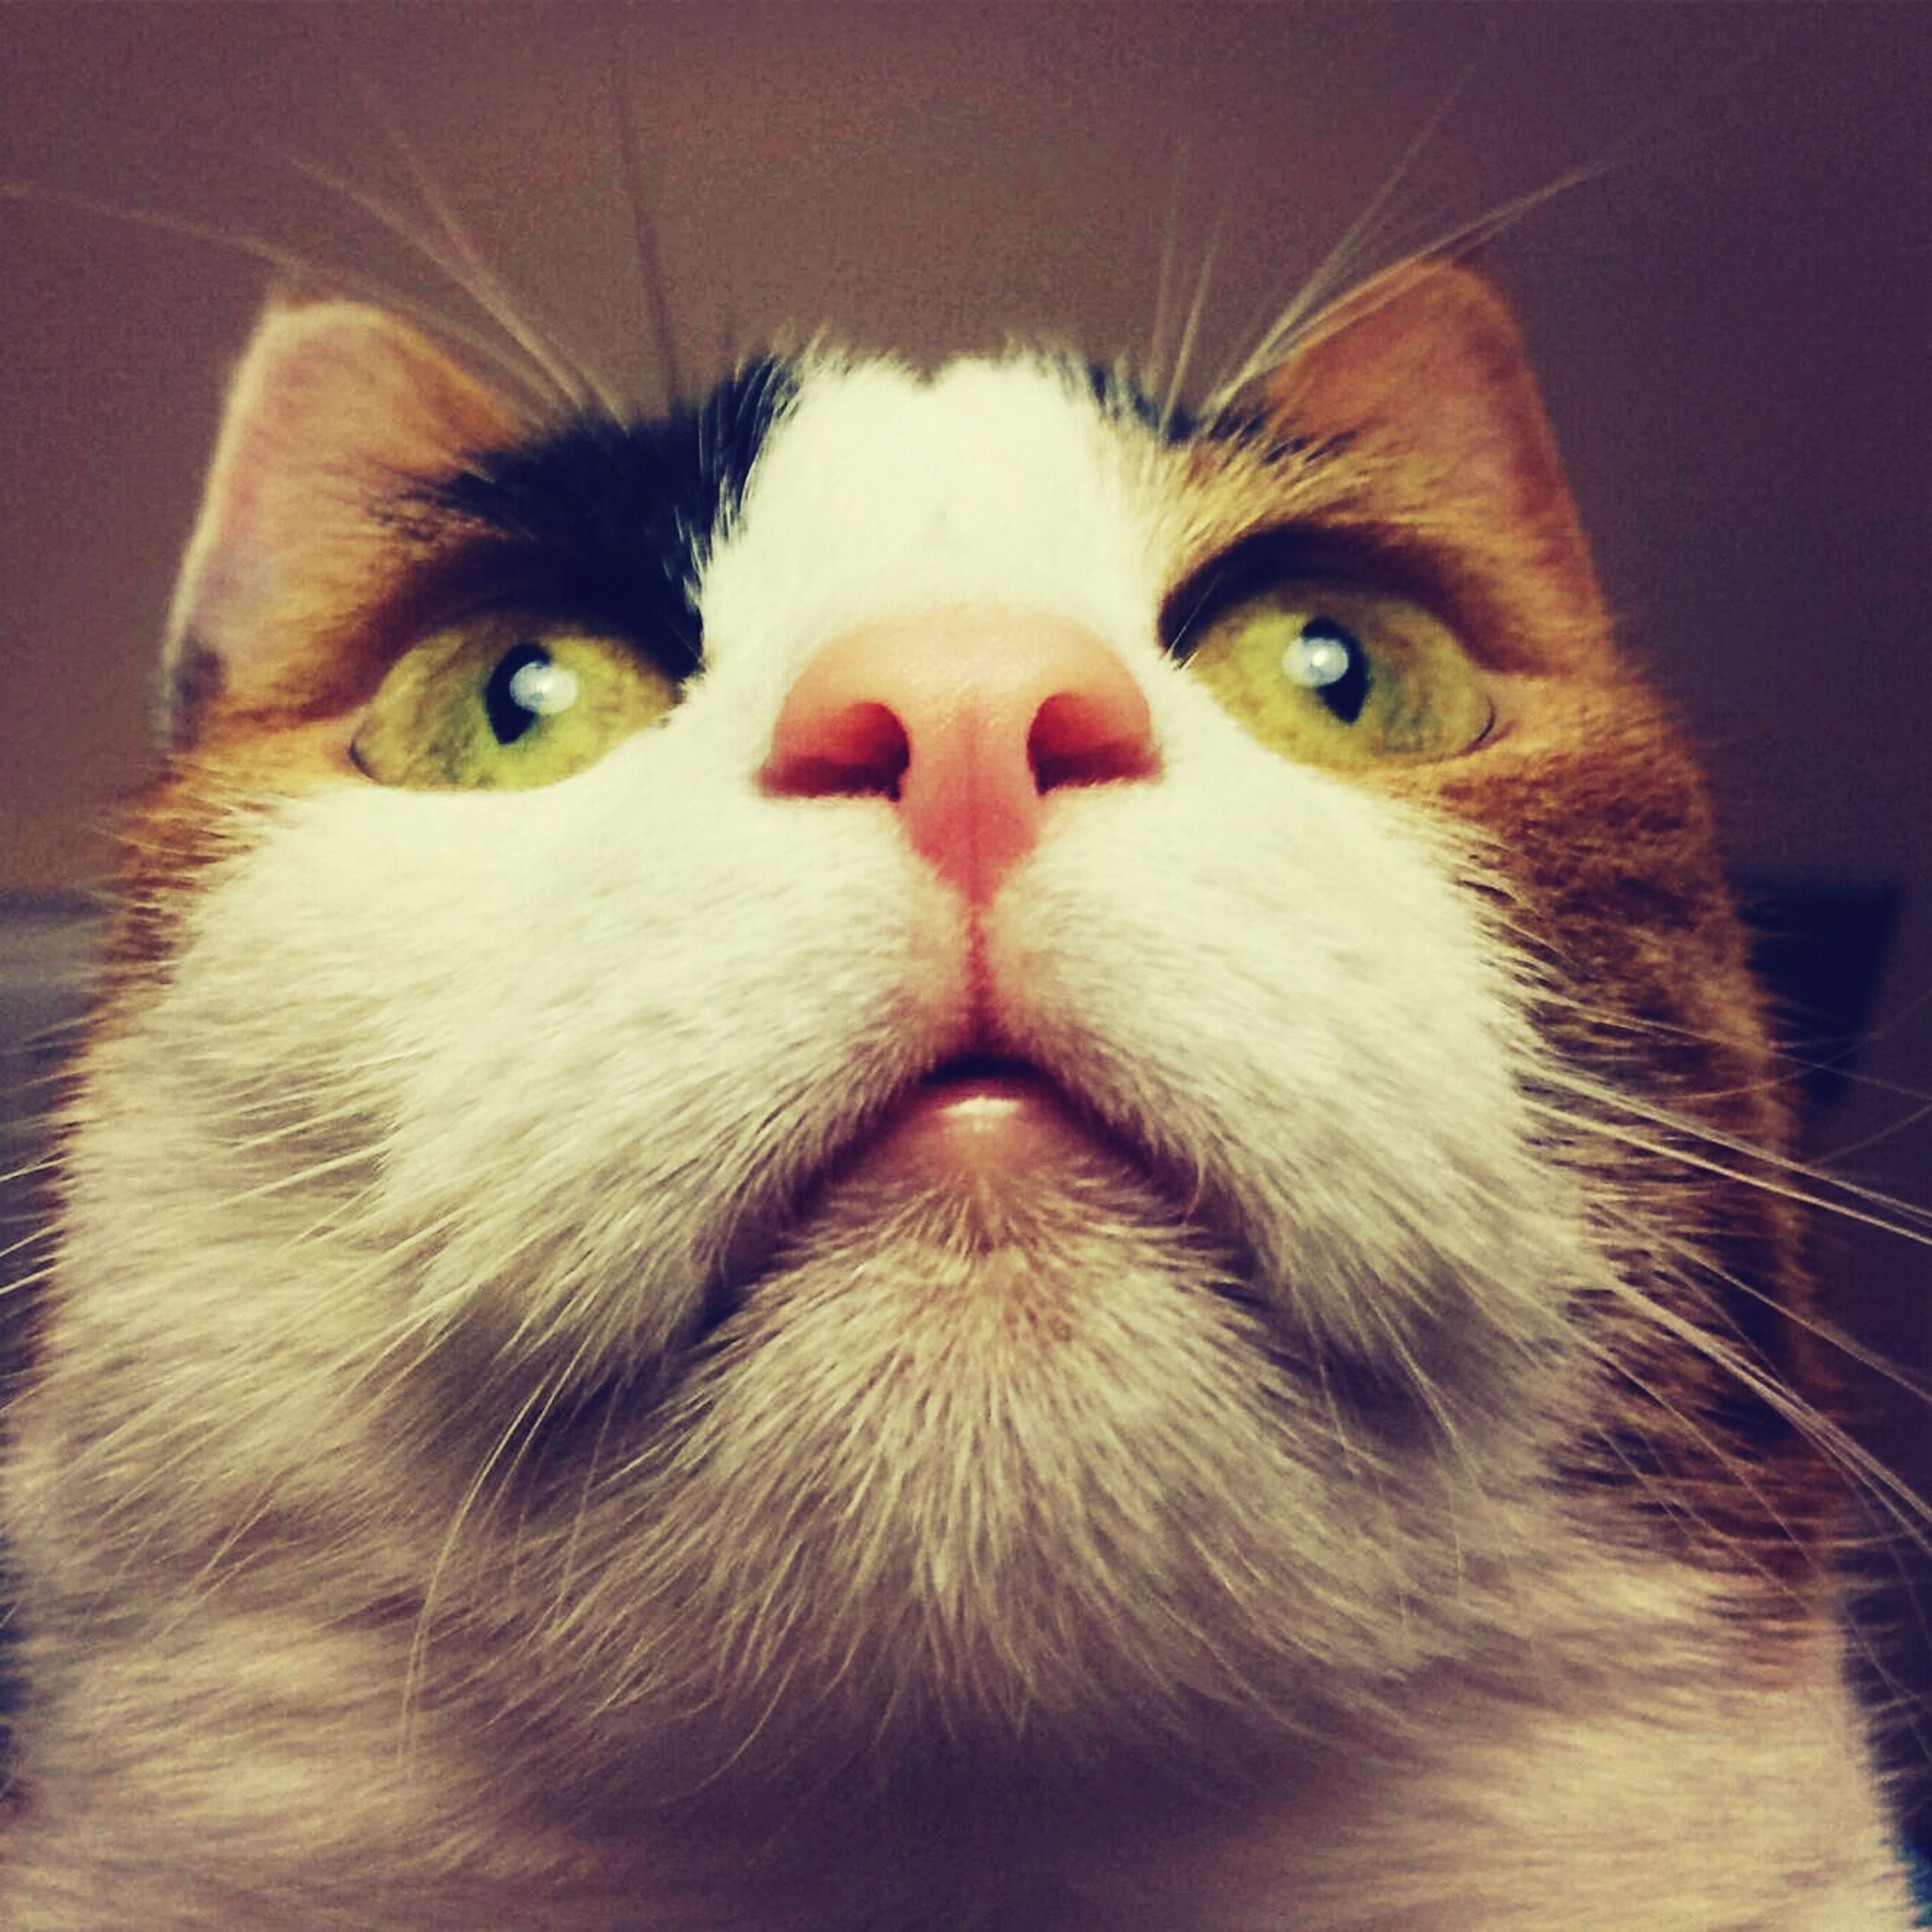 pets, animal themes, domestic animals, one animal, domestic cat, cat, indoors, feline, whisker, mammal, portrait, close-up, animal head, looking at camera, animal eye, alertness, staring, animal body part, front view